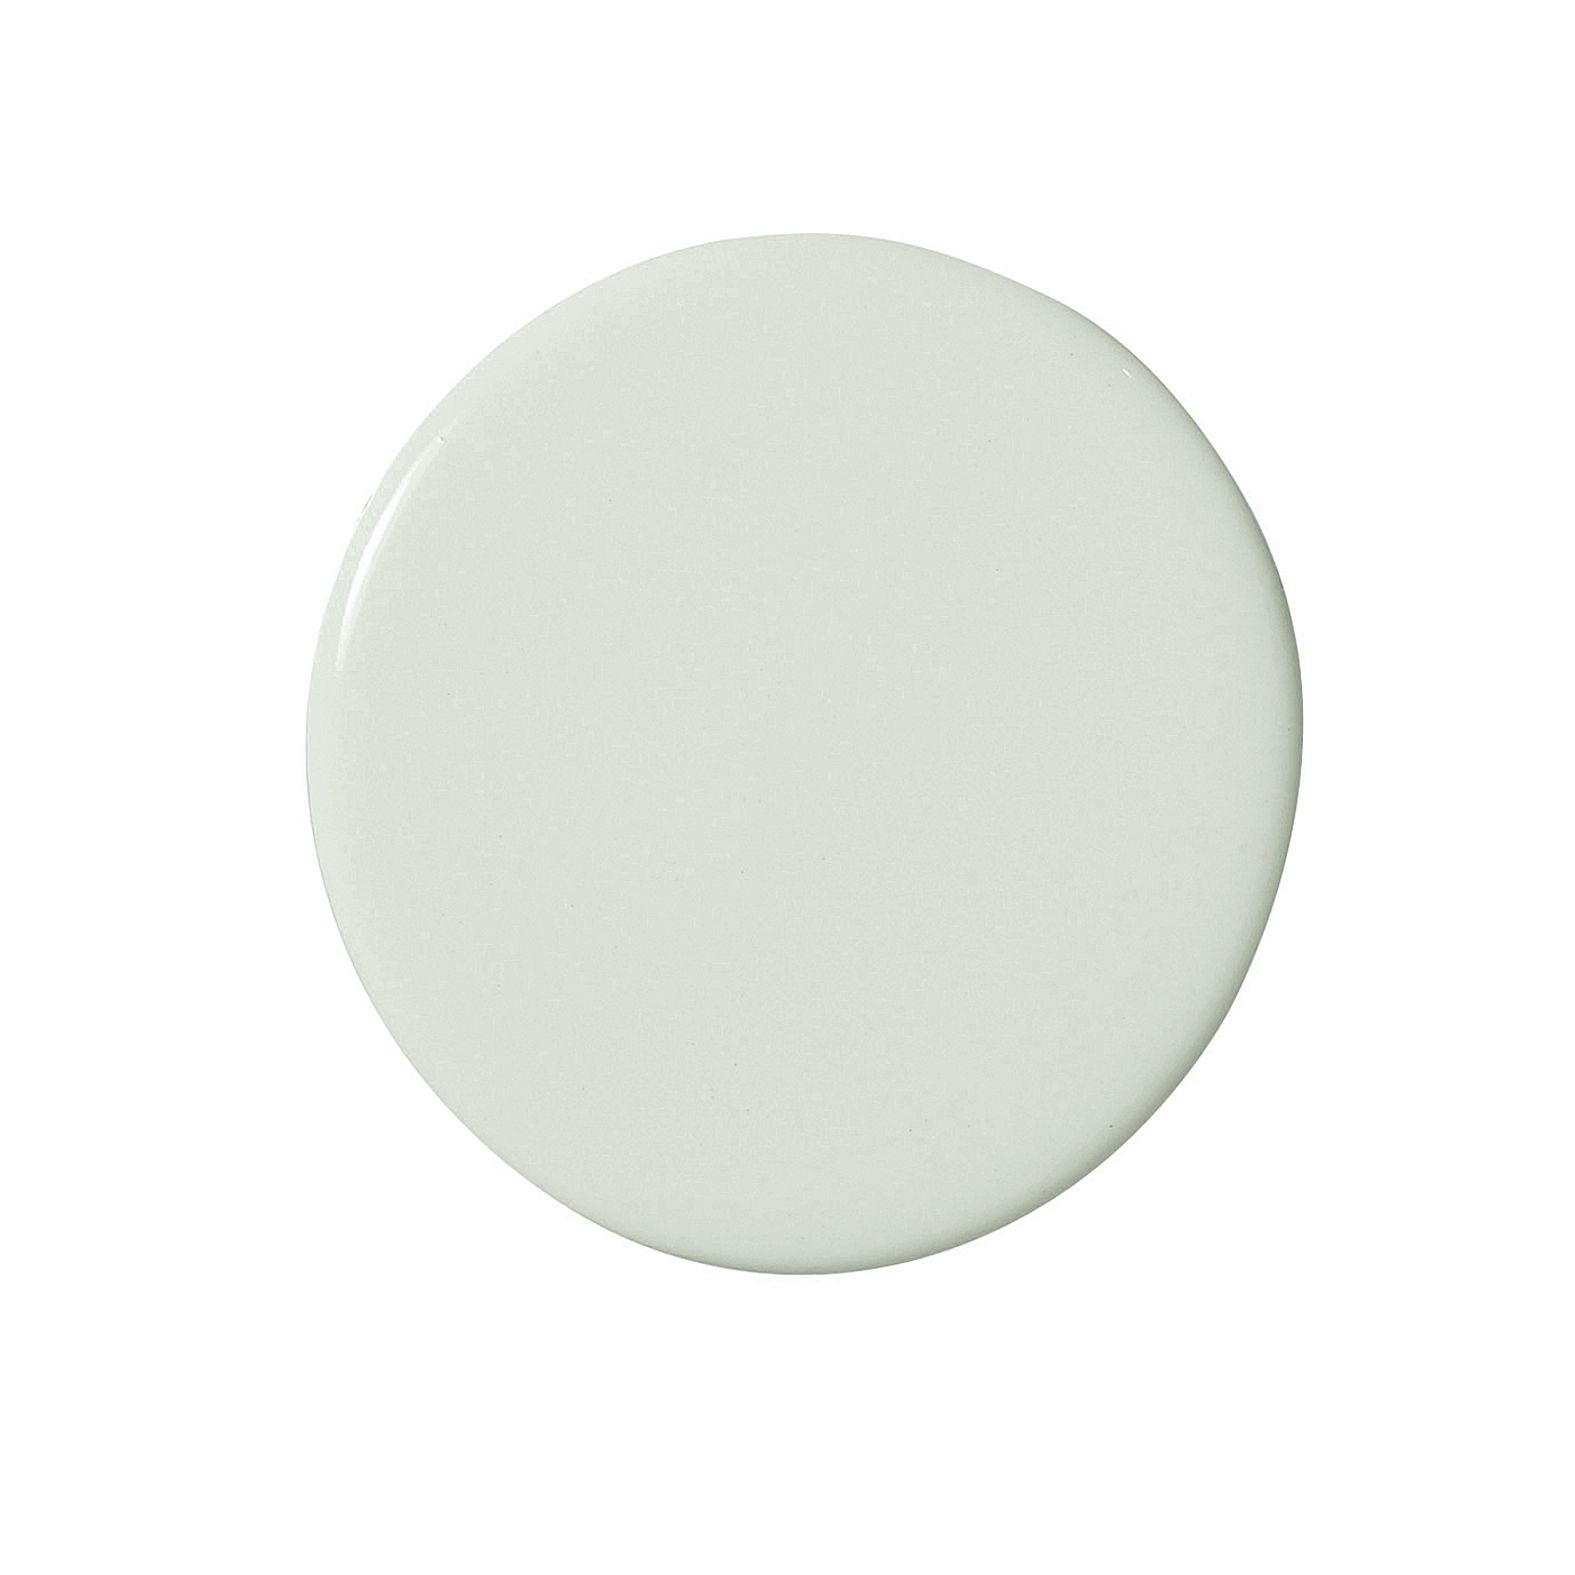 rain paint color by serena lily they say a pale tranquil shade - Celadon Paint Color